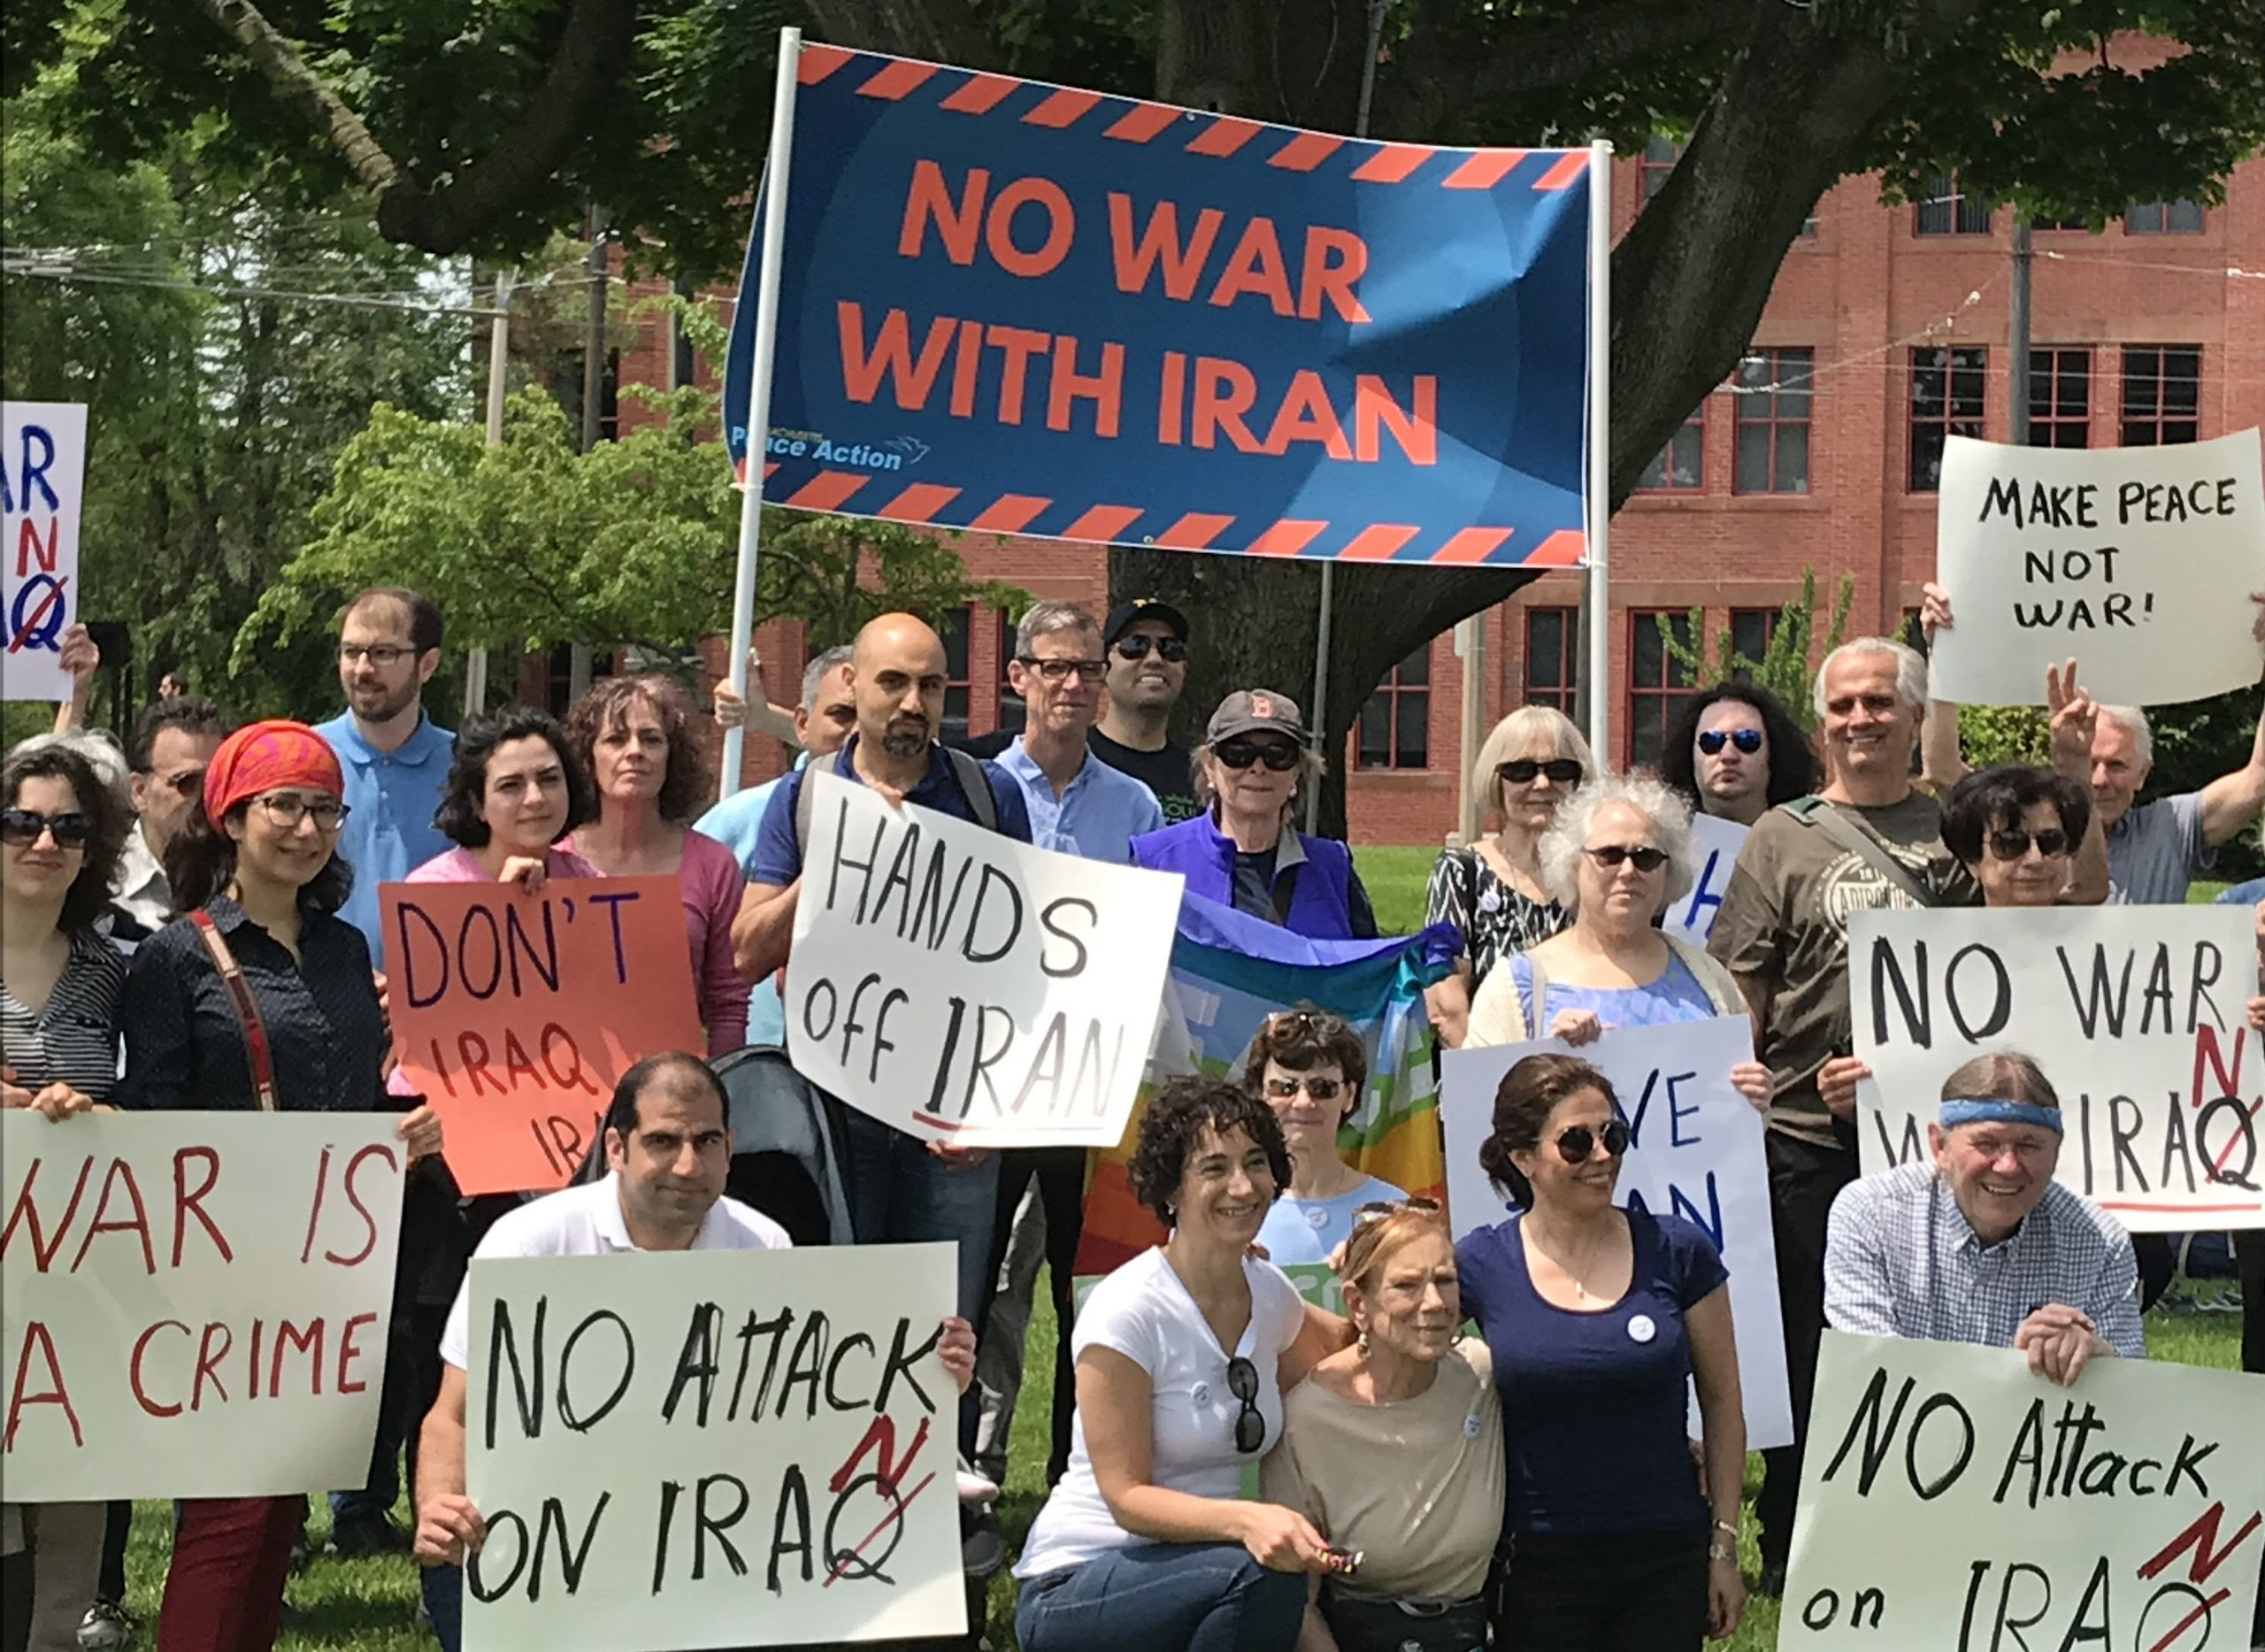 No War with Iran rally, June 2019, Watertown, MA